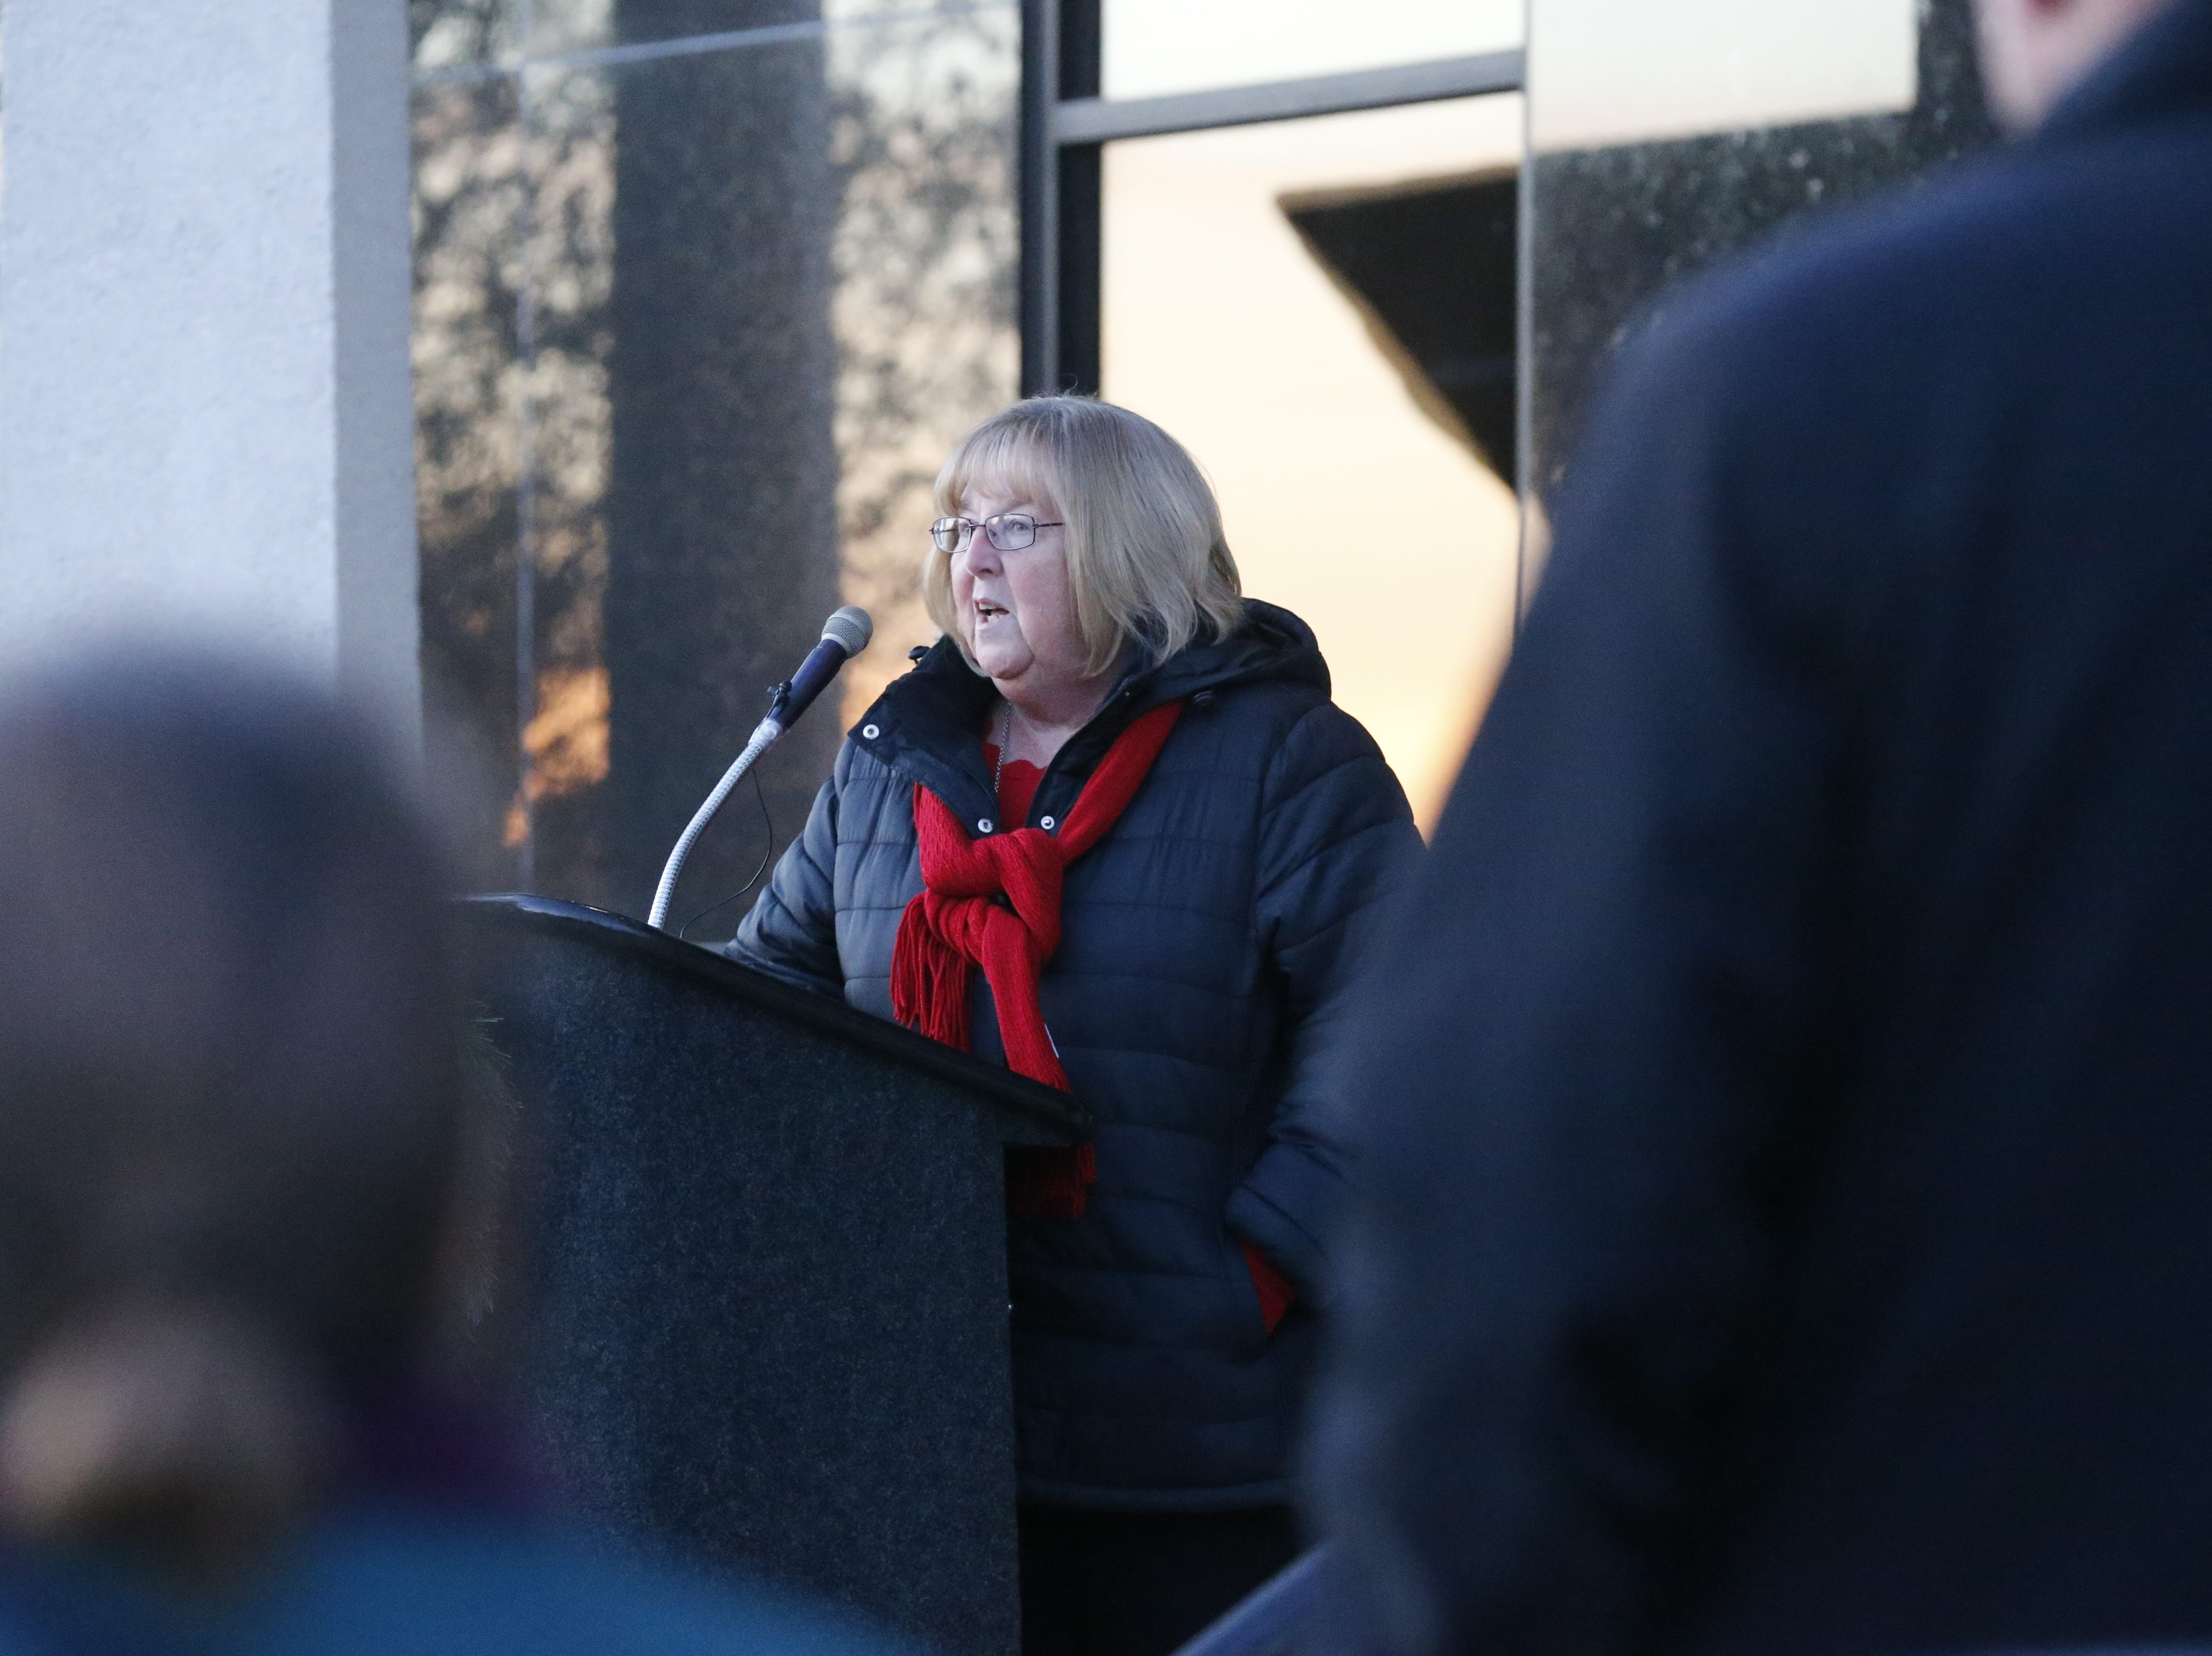 Diane Whitehead of the Richmond Police Department had the honor of lighting the city's tree on Friday, Dec. 7, 2018.